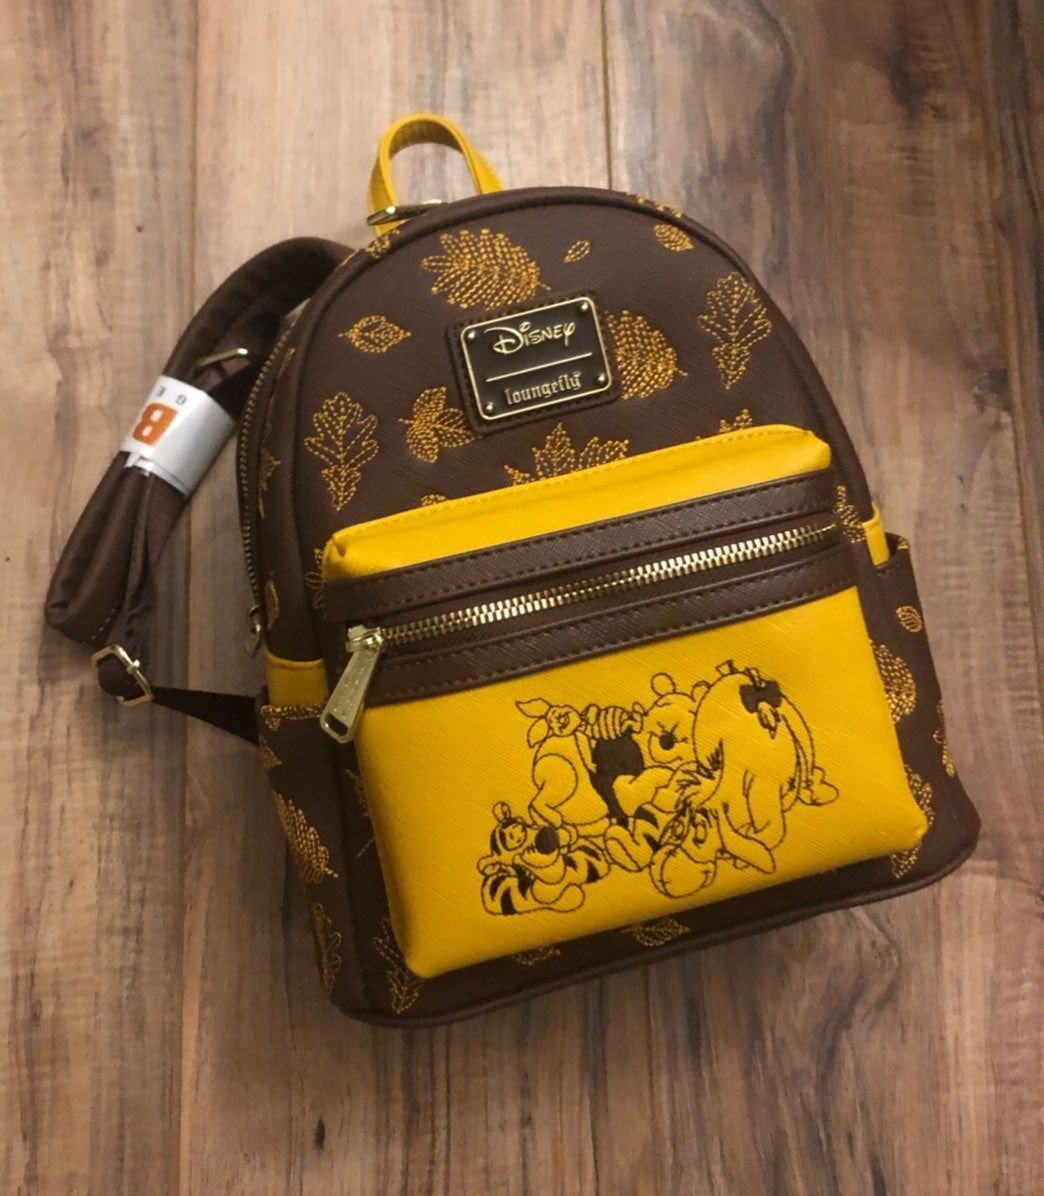 Details about  /Disney Loungefly Red Winnie the Pooh Hunny Passport Crossbody Purse Bag NWT